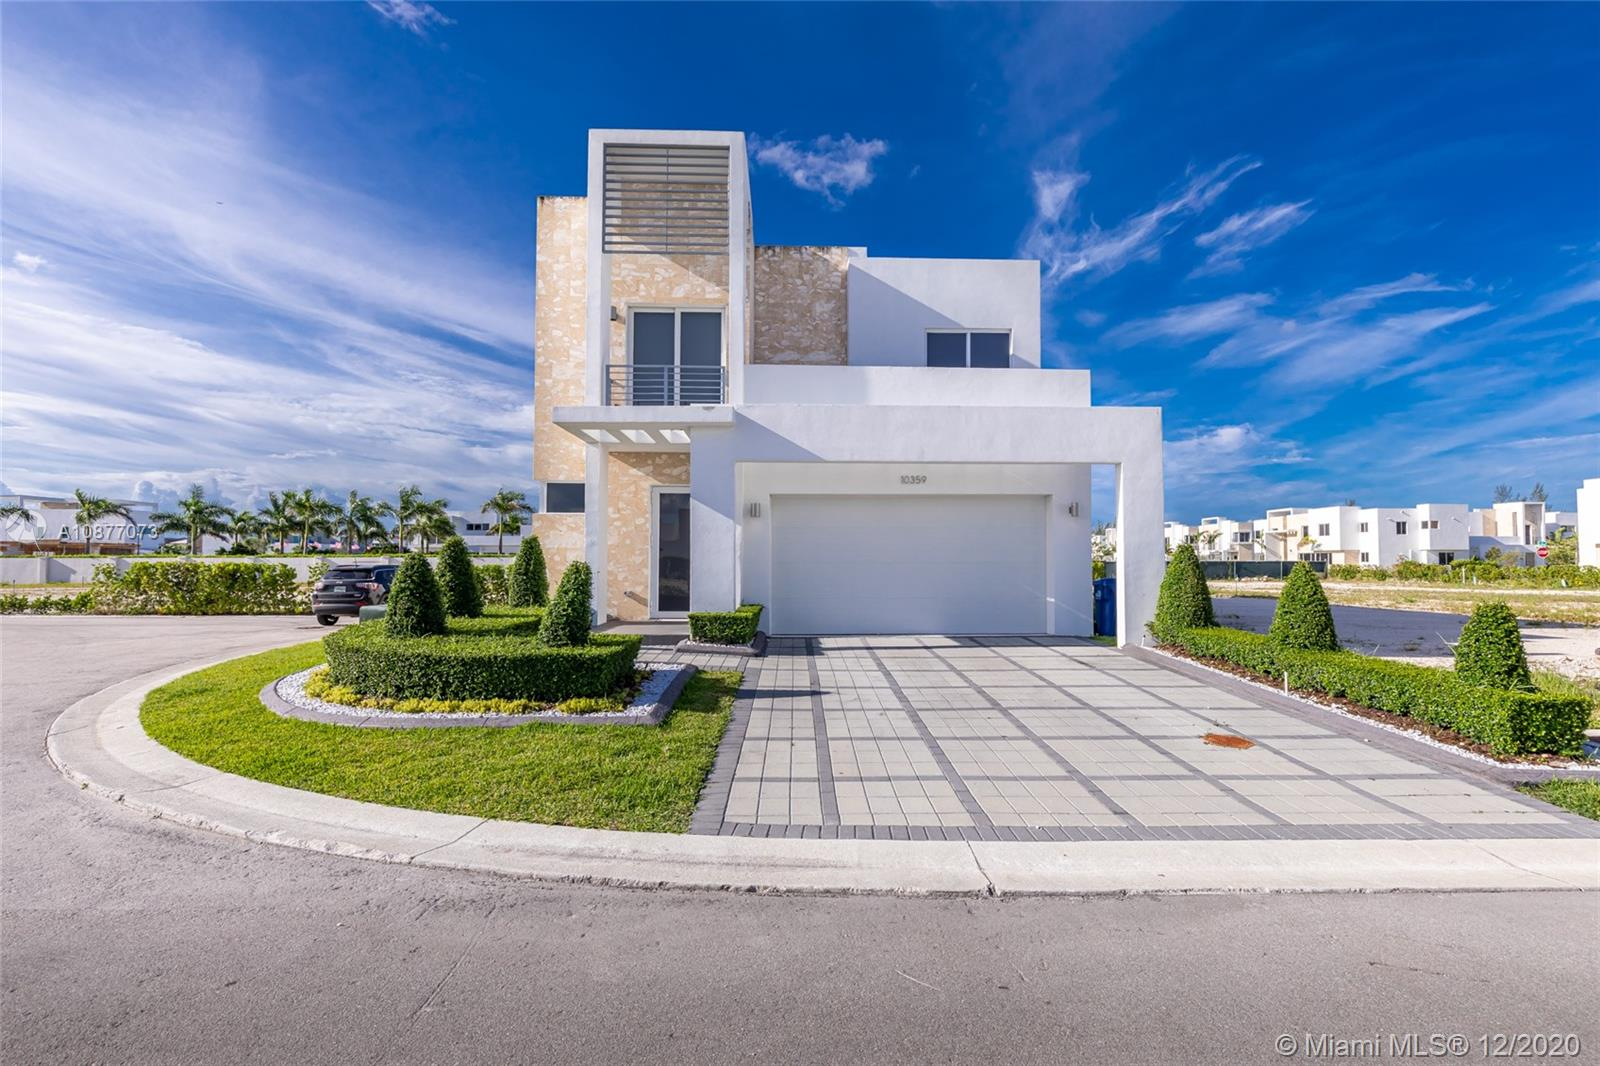 Modern-Luxurious house in doral, in gated community,24 hour security, pool, extra patio lot, cabana bath,  exclusive community 80 houses, close to highways and schools, POOL, CLUB HOUSE and more.